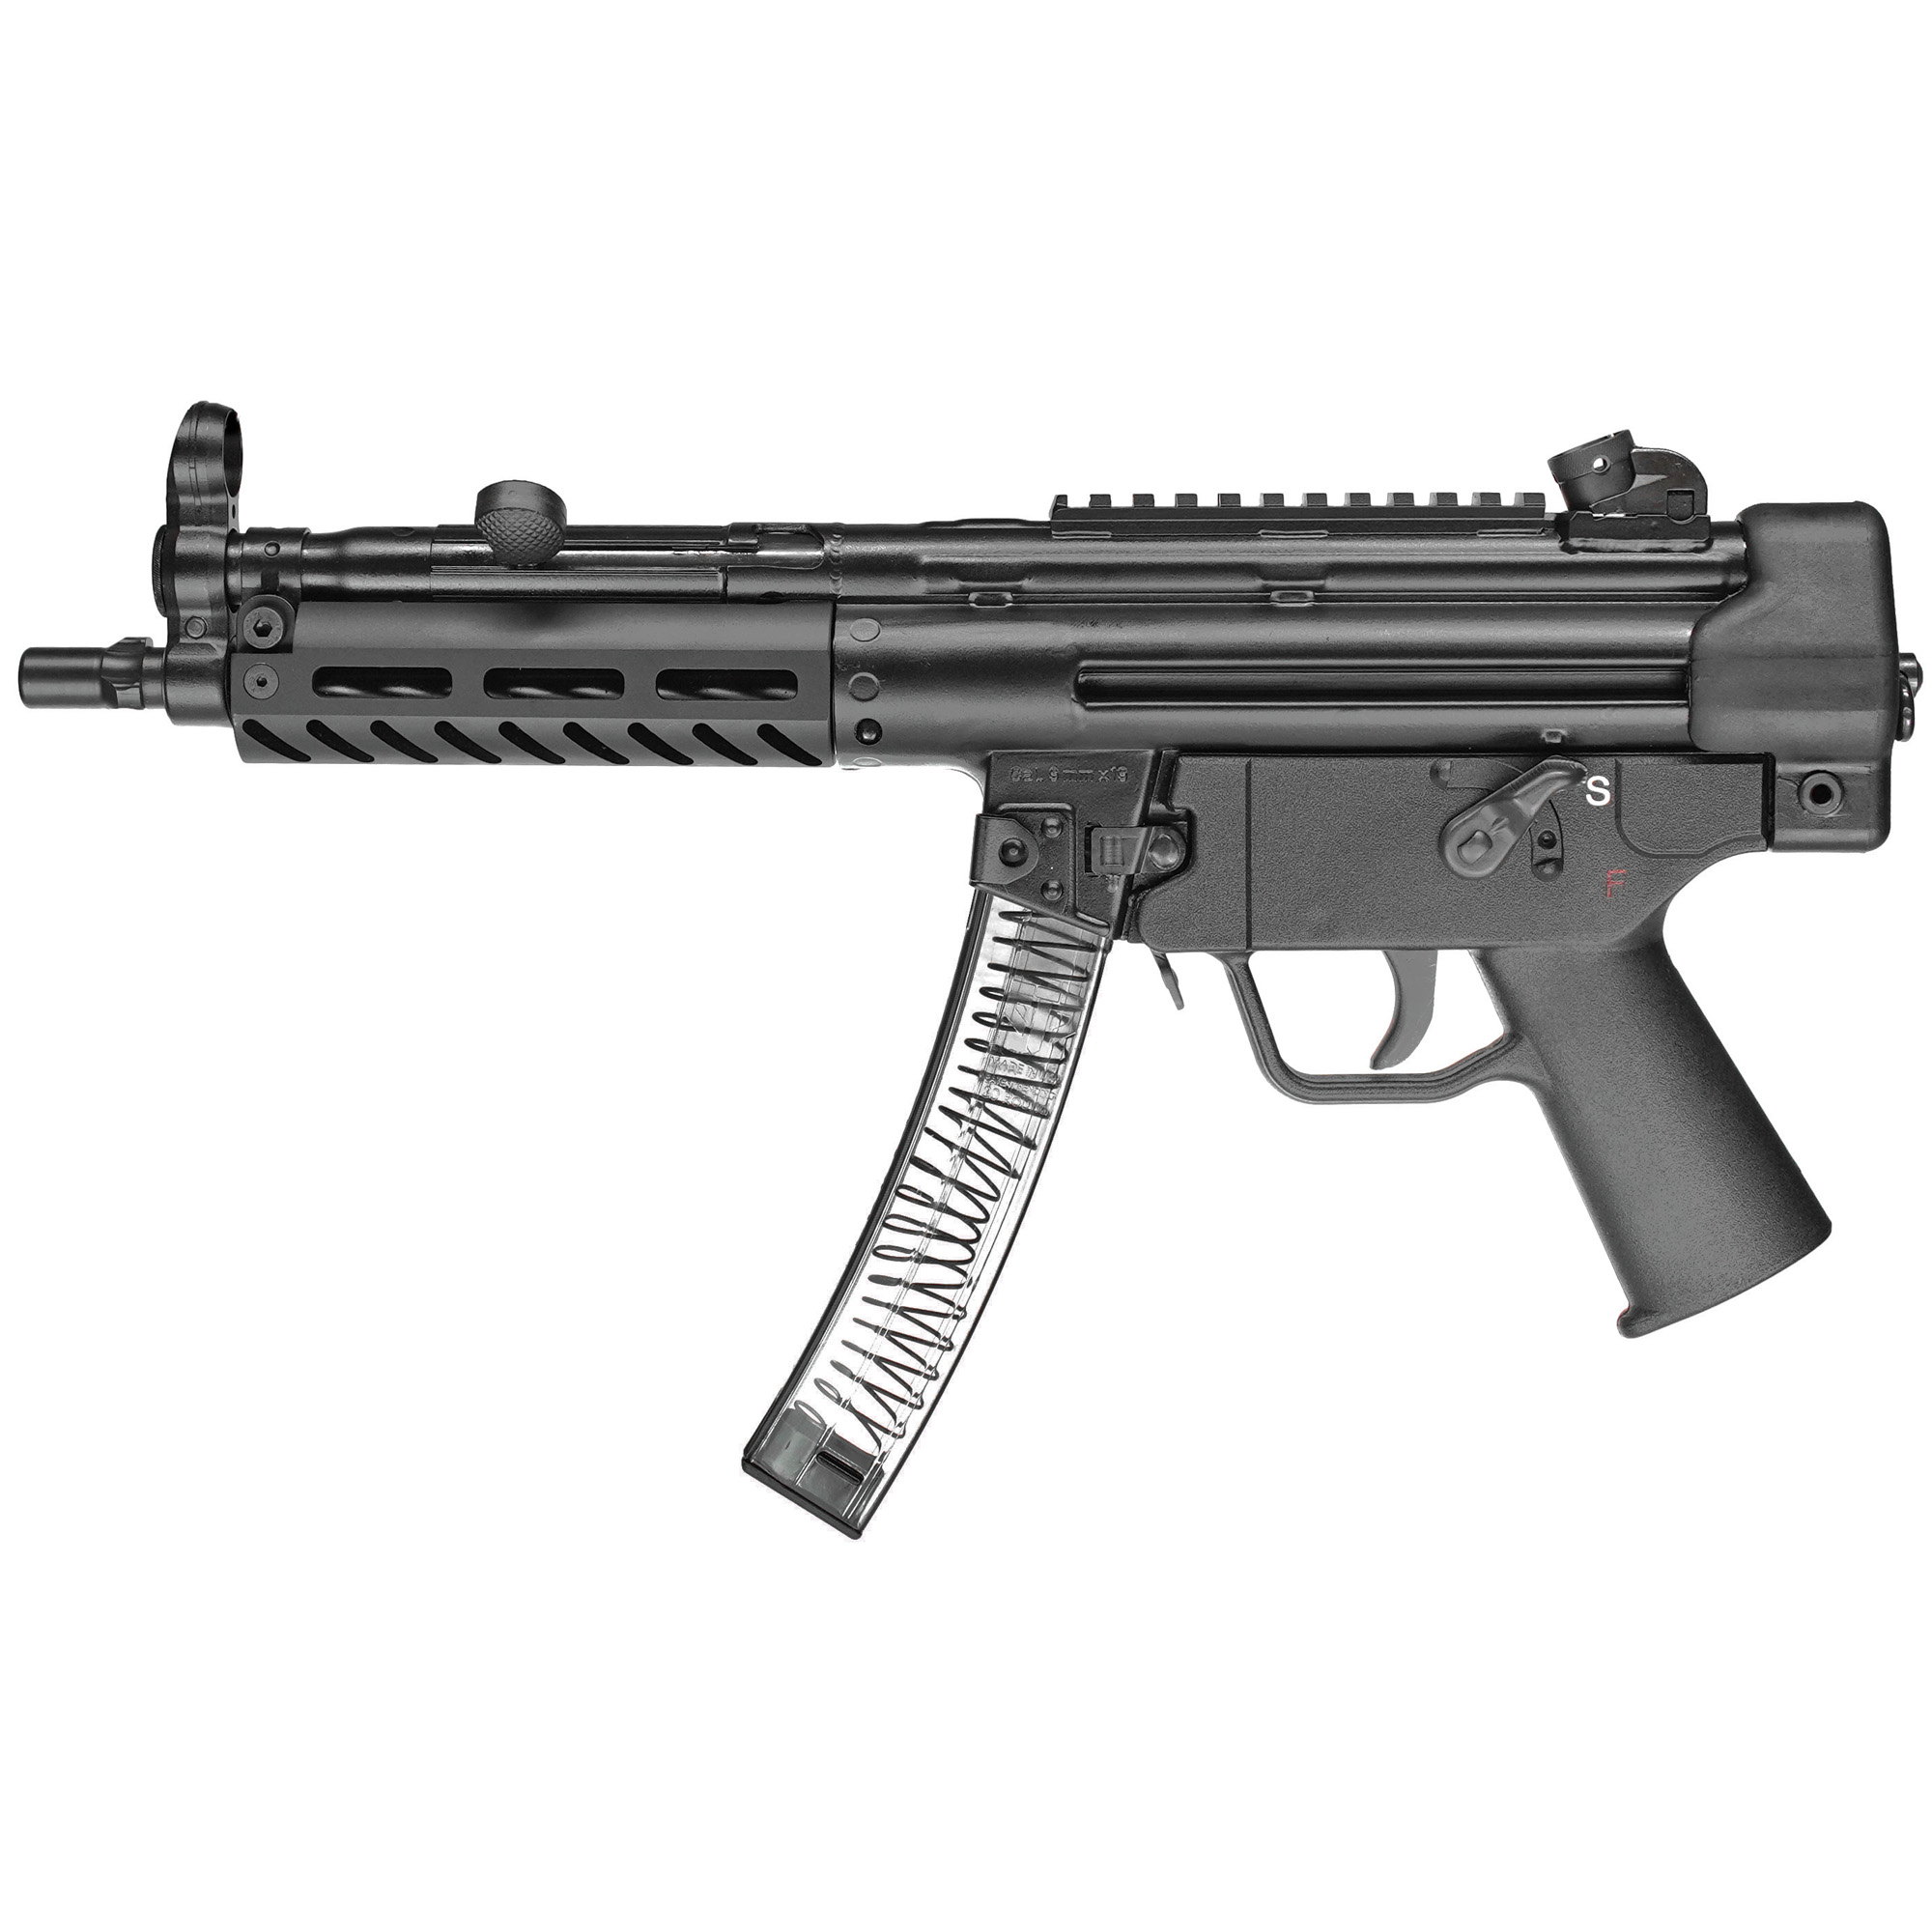 """The 9C model features an M-LOK compatible aluminum handguard and nitride treated 8.86"""""""" 3-lug barrel. Both a push button and paddle style magazine release are standard. The 4.5"""" precision-welded top rail enables use of your favorite optic or the traditional iron sights (included). The polymer end cap with swivel adapter provides a sling attachment point. The gun ships in a heavy duty range case with: single point bungee sling"""" two 30-round magazines and rear sight adjustment tool."""